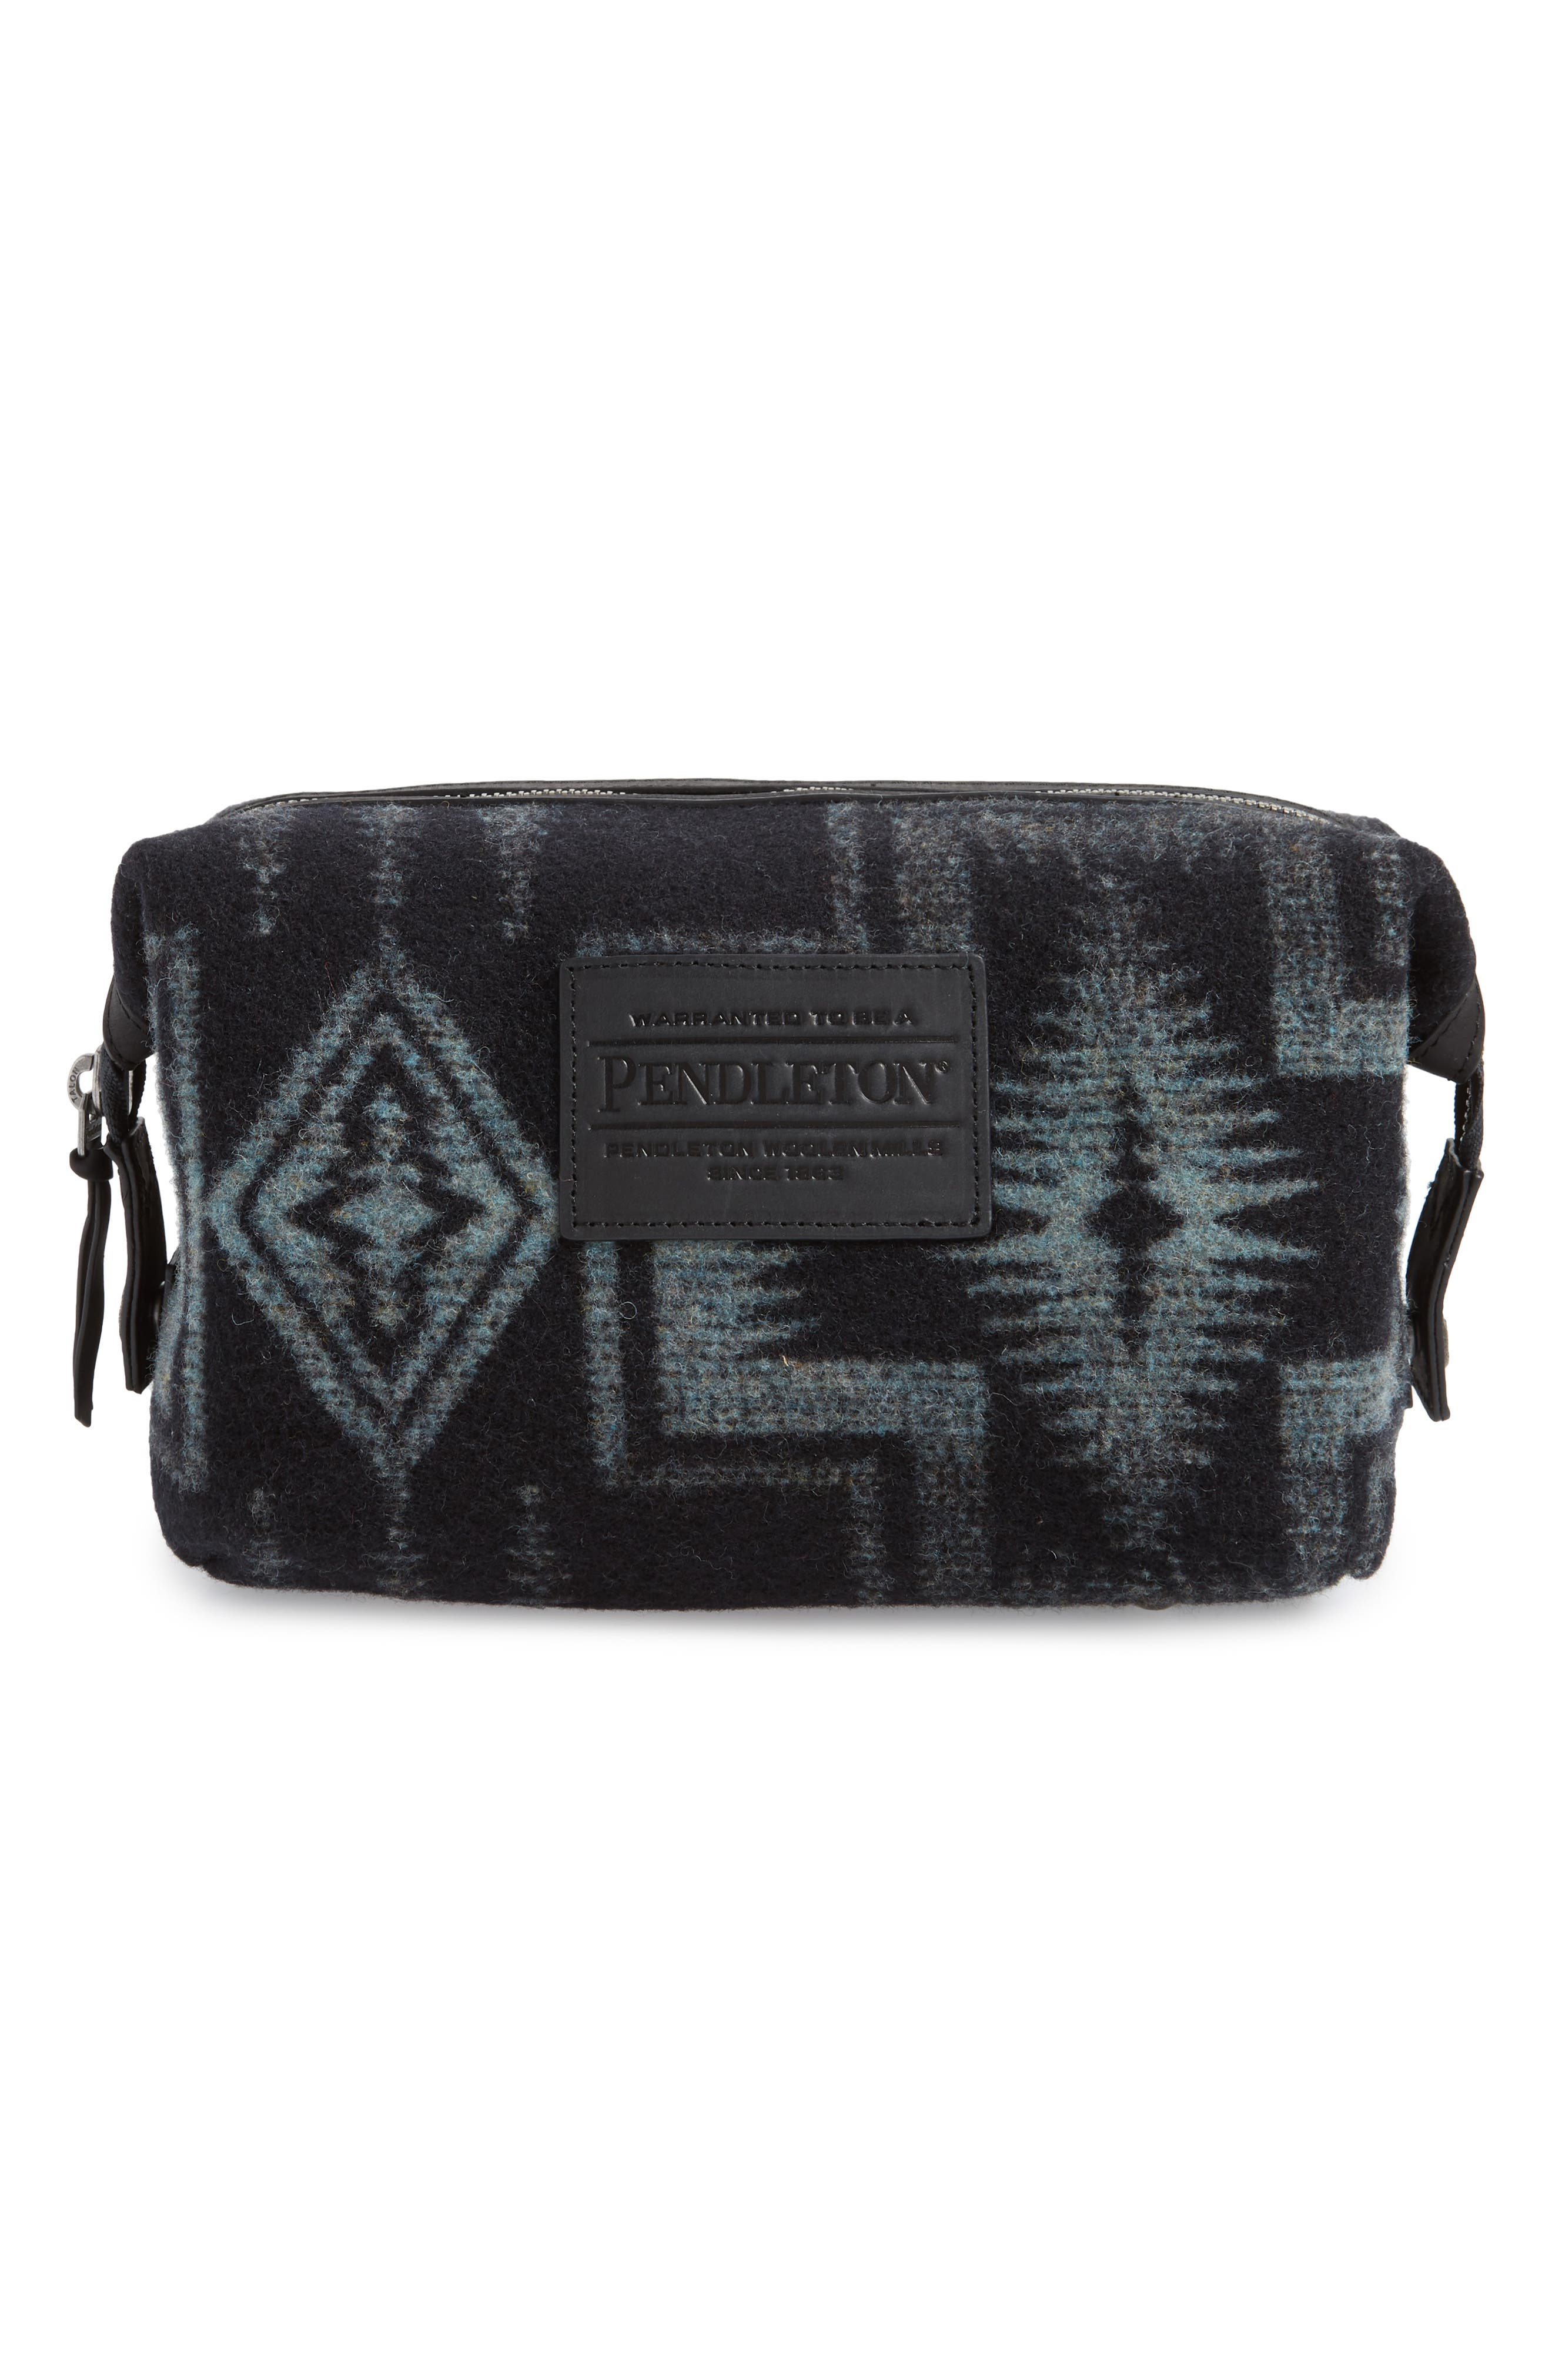 Essential Travel Pouch,                         Main,                         color, HARDING SHALE